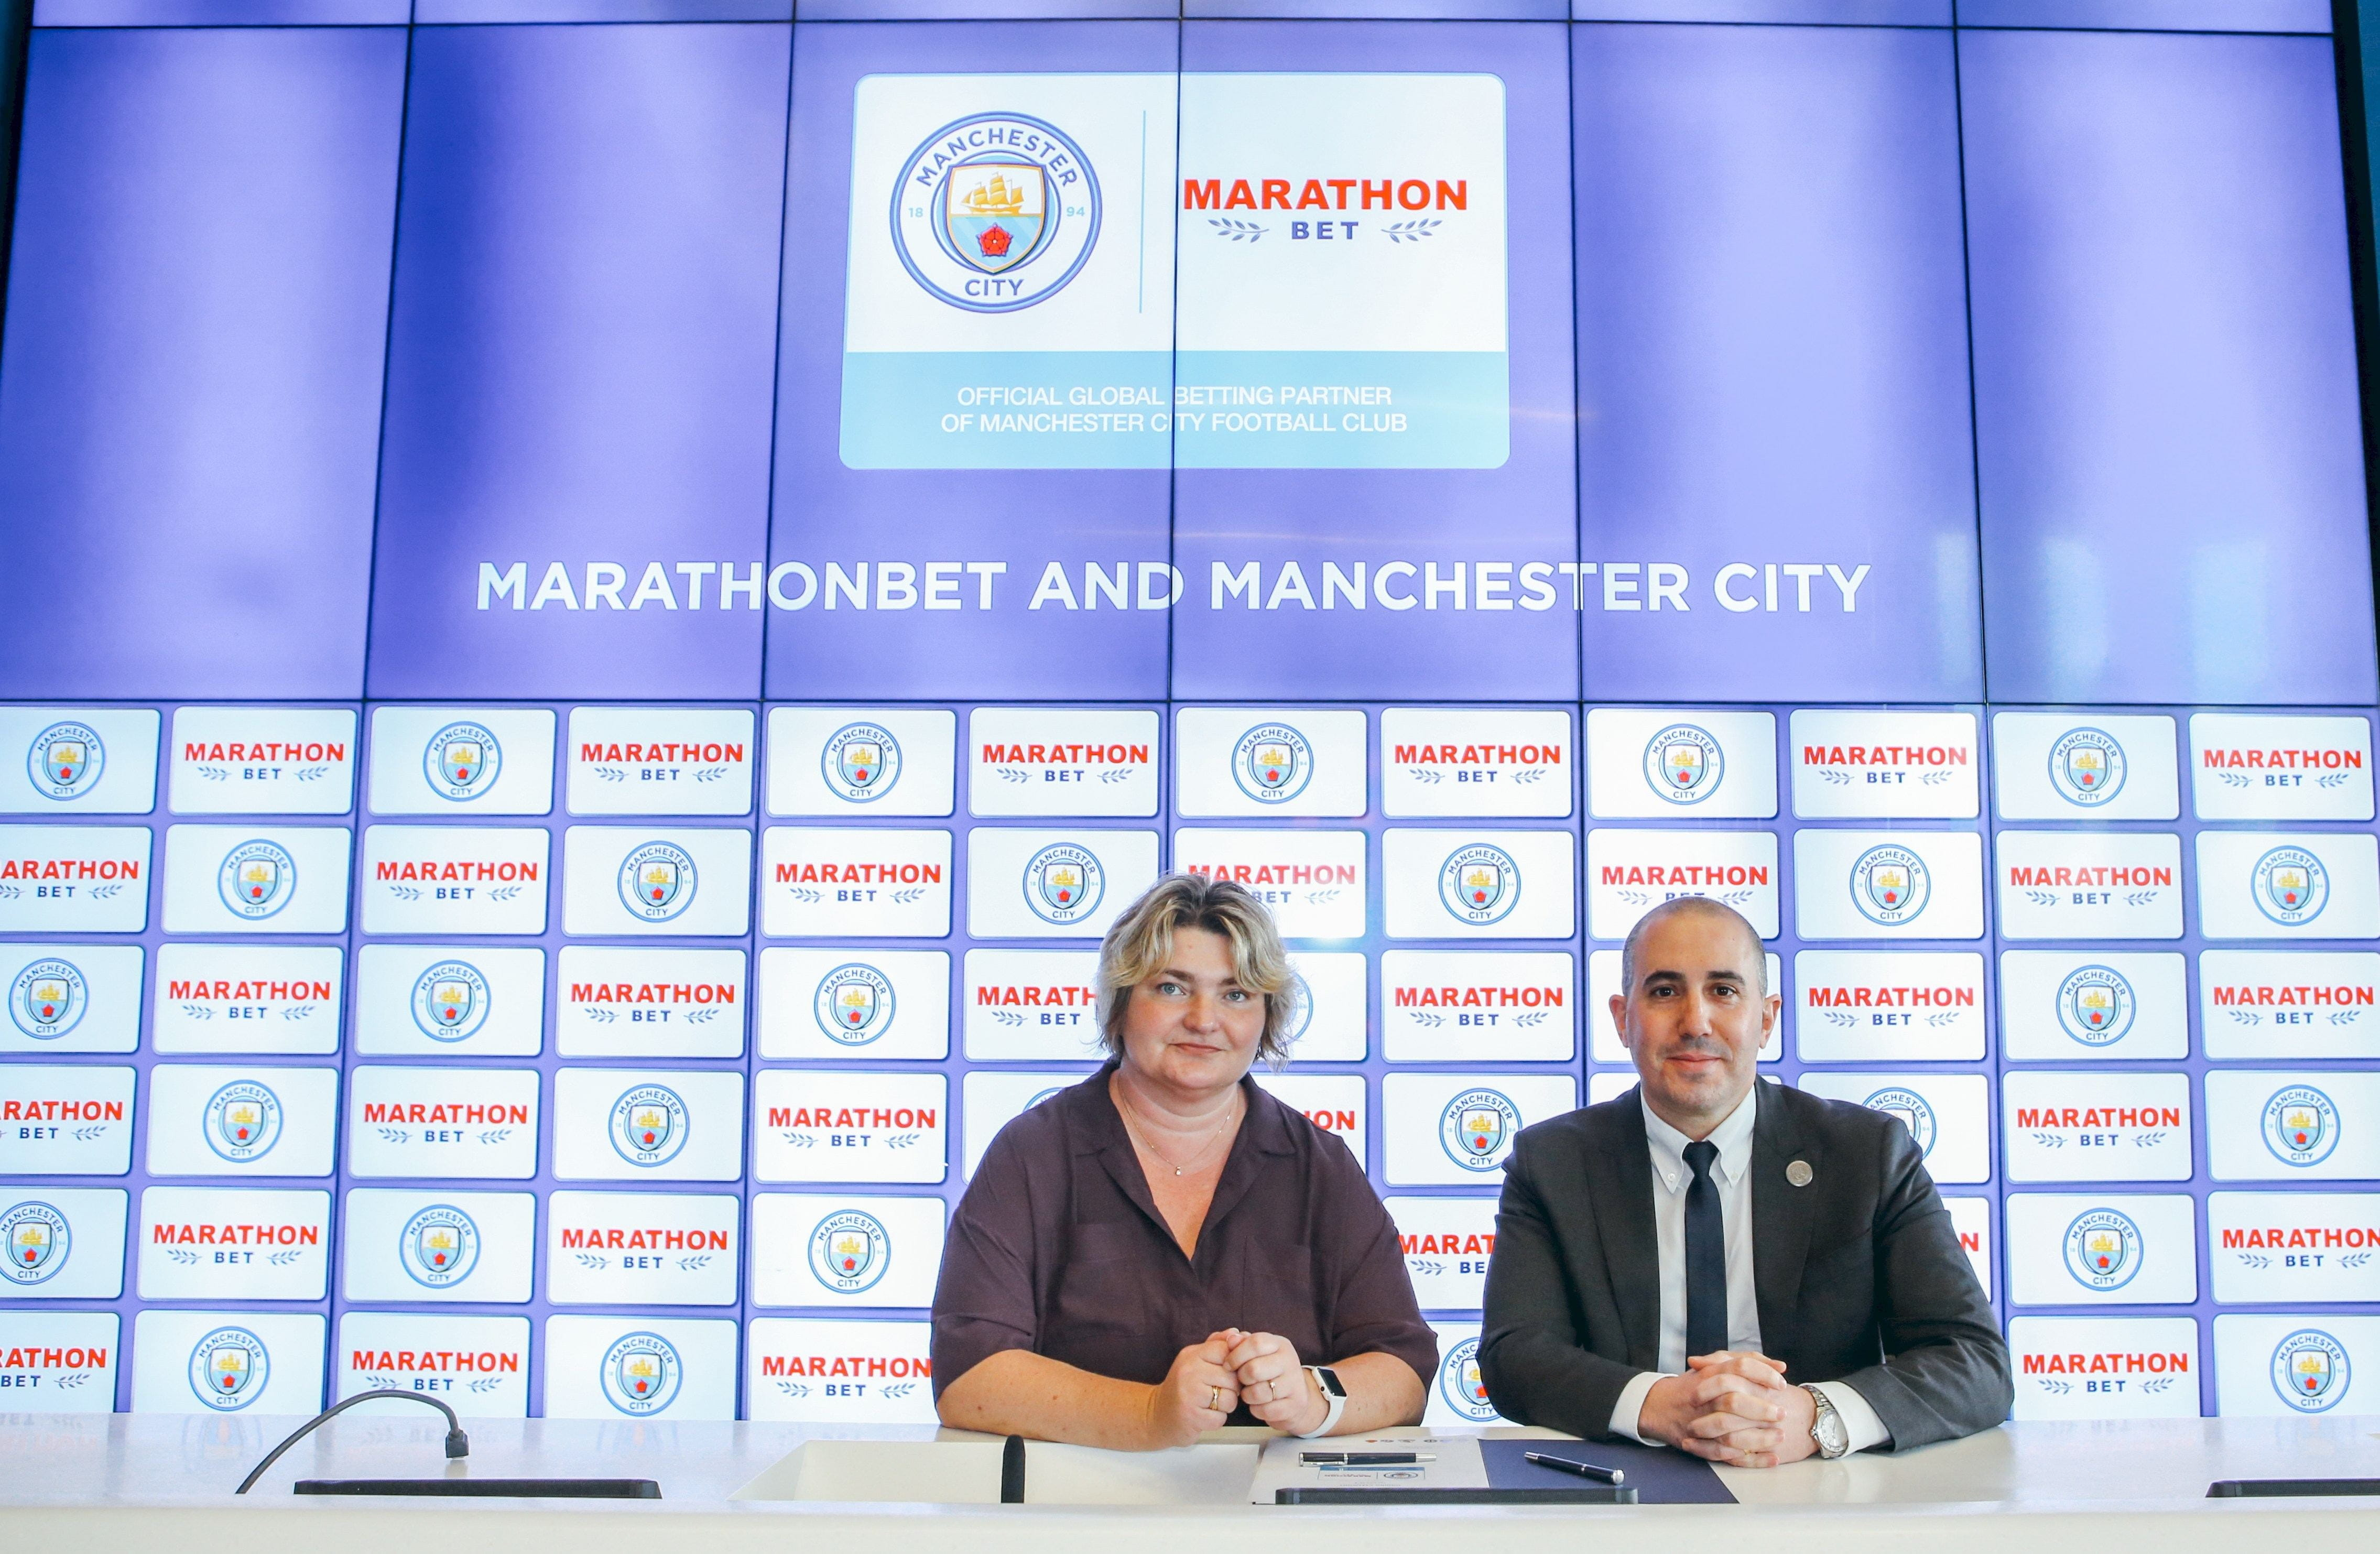 Damian Willoughby and , Natalia Zavodnik signing an agreement between Marathonbet and Manchester CIty.